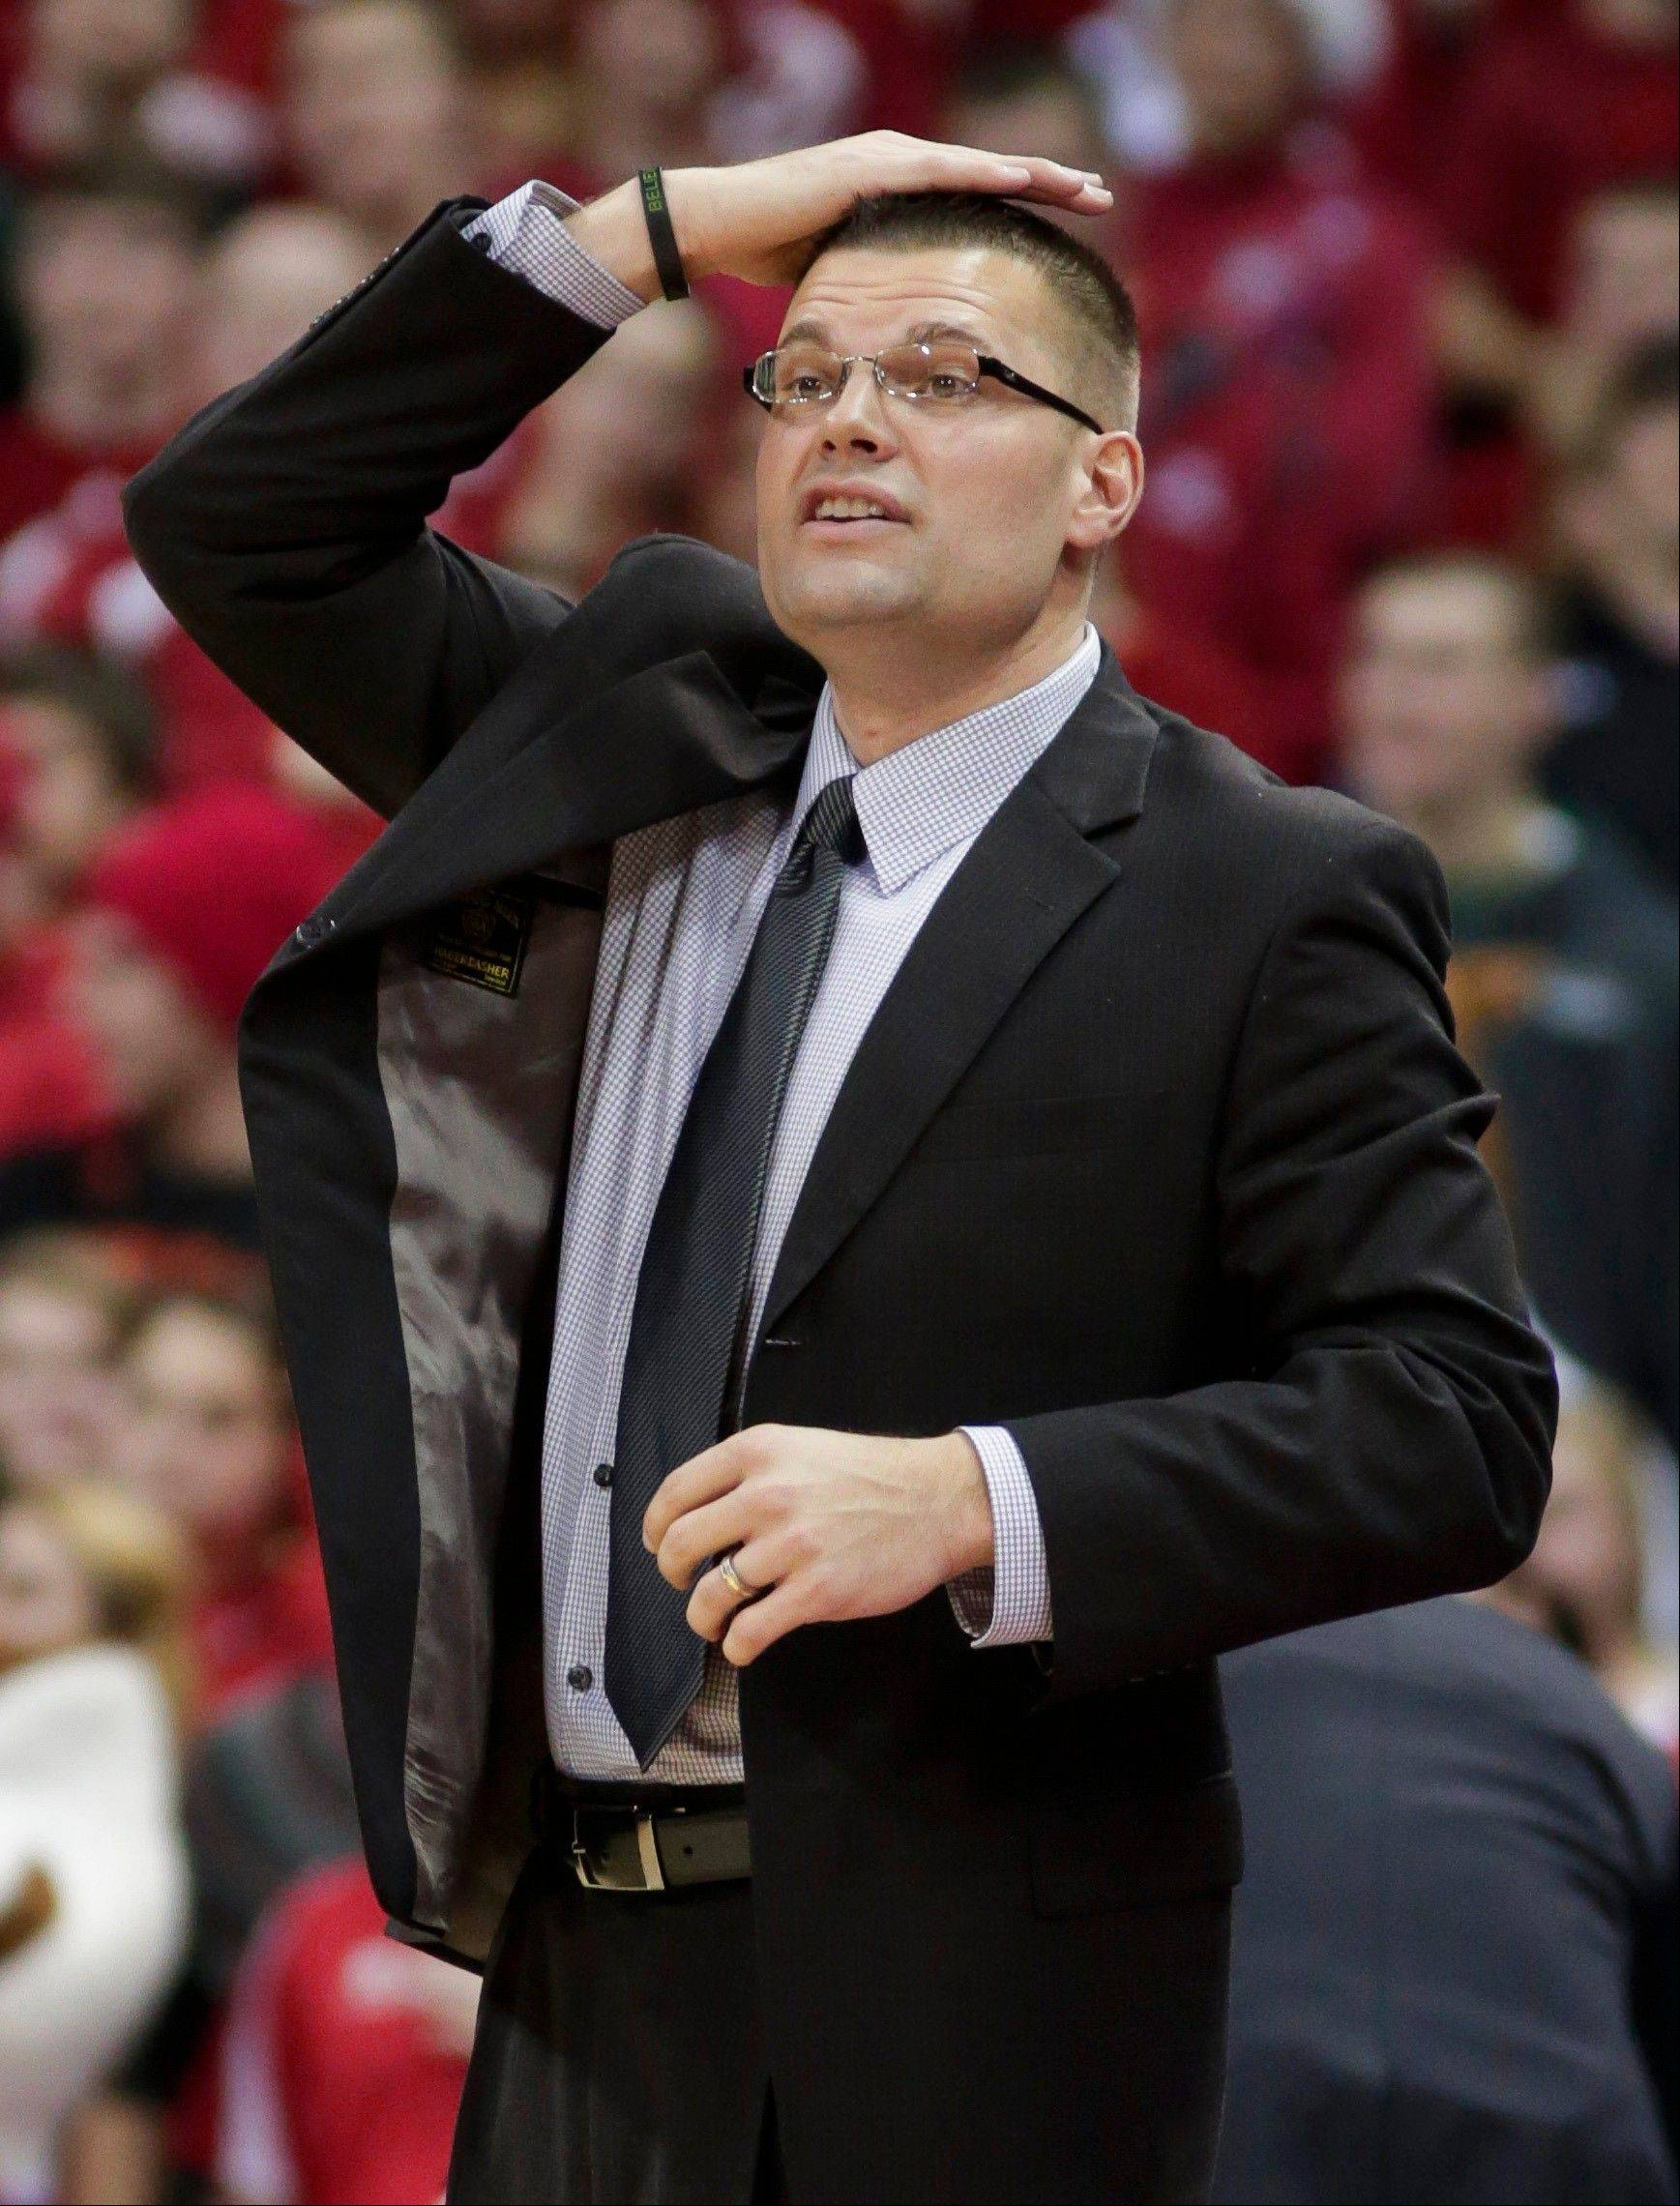 Wisconsin-Green Bay coach Brian Wardle, who led the Phoenix to a 18-15 record last season, is under investigation by school officials following two complaints by players who have left the program.